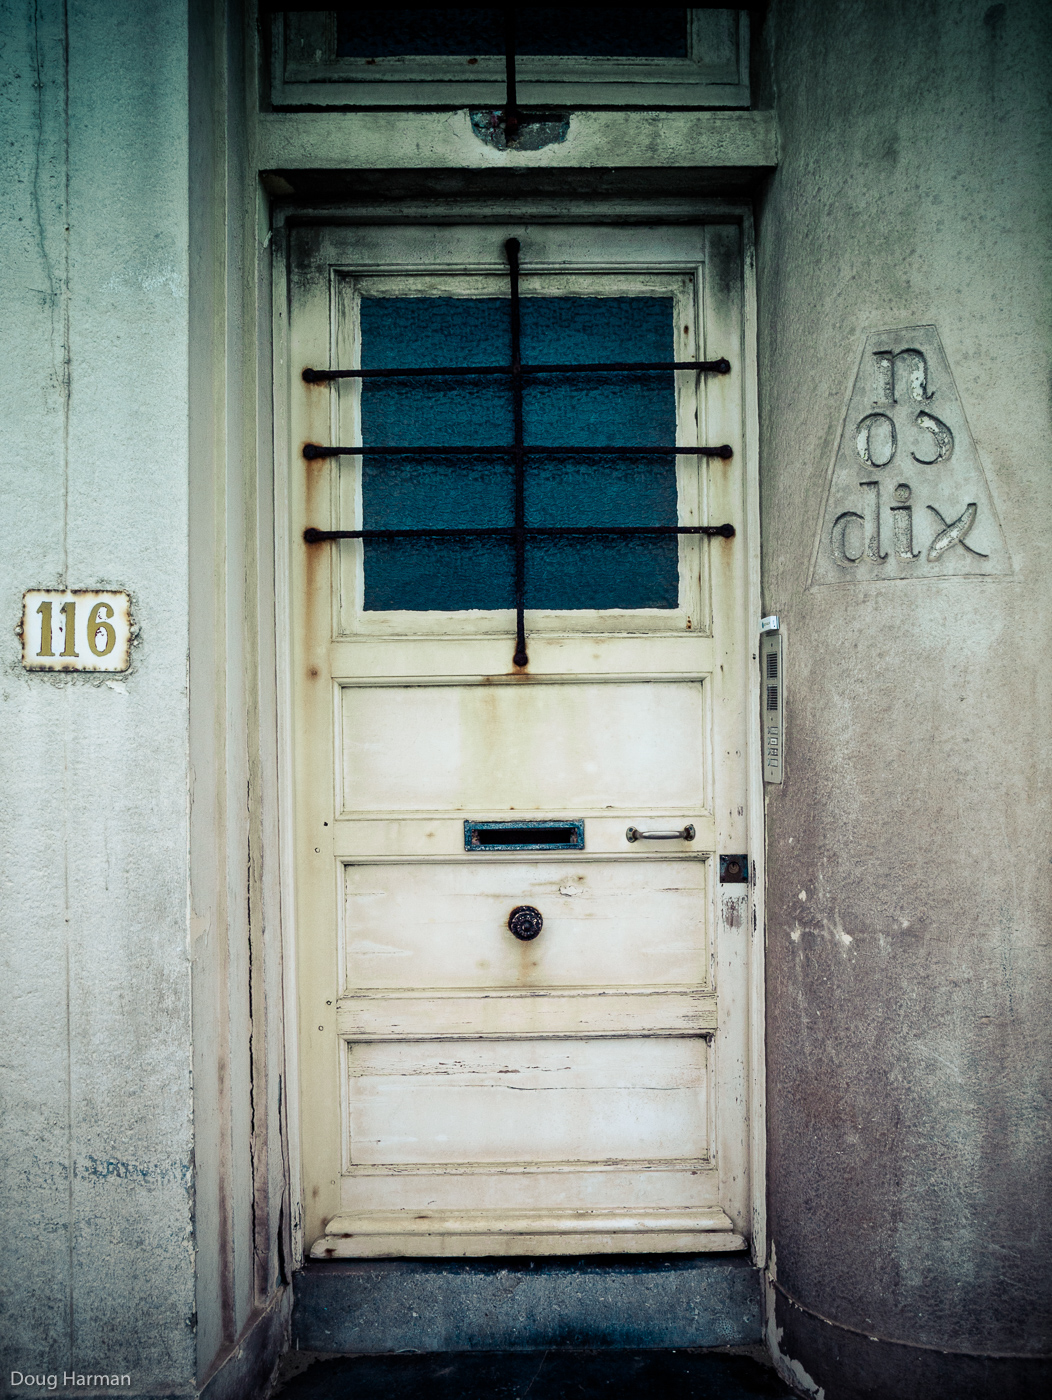 One Hundred and Sixteen. One of the doors photographed as part of my Doorways project, in Dunkirk, France.